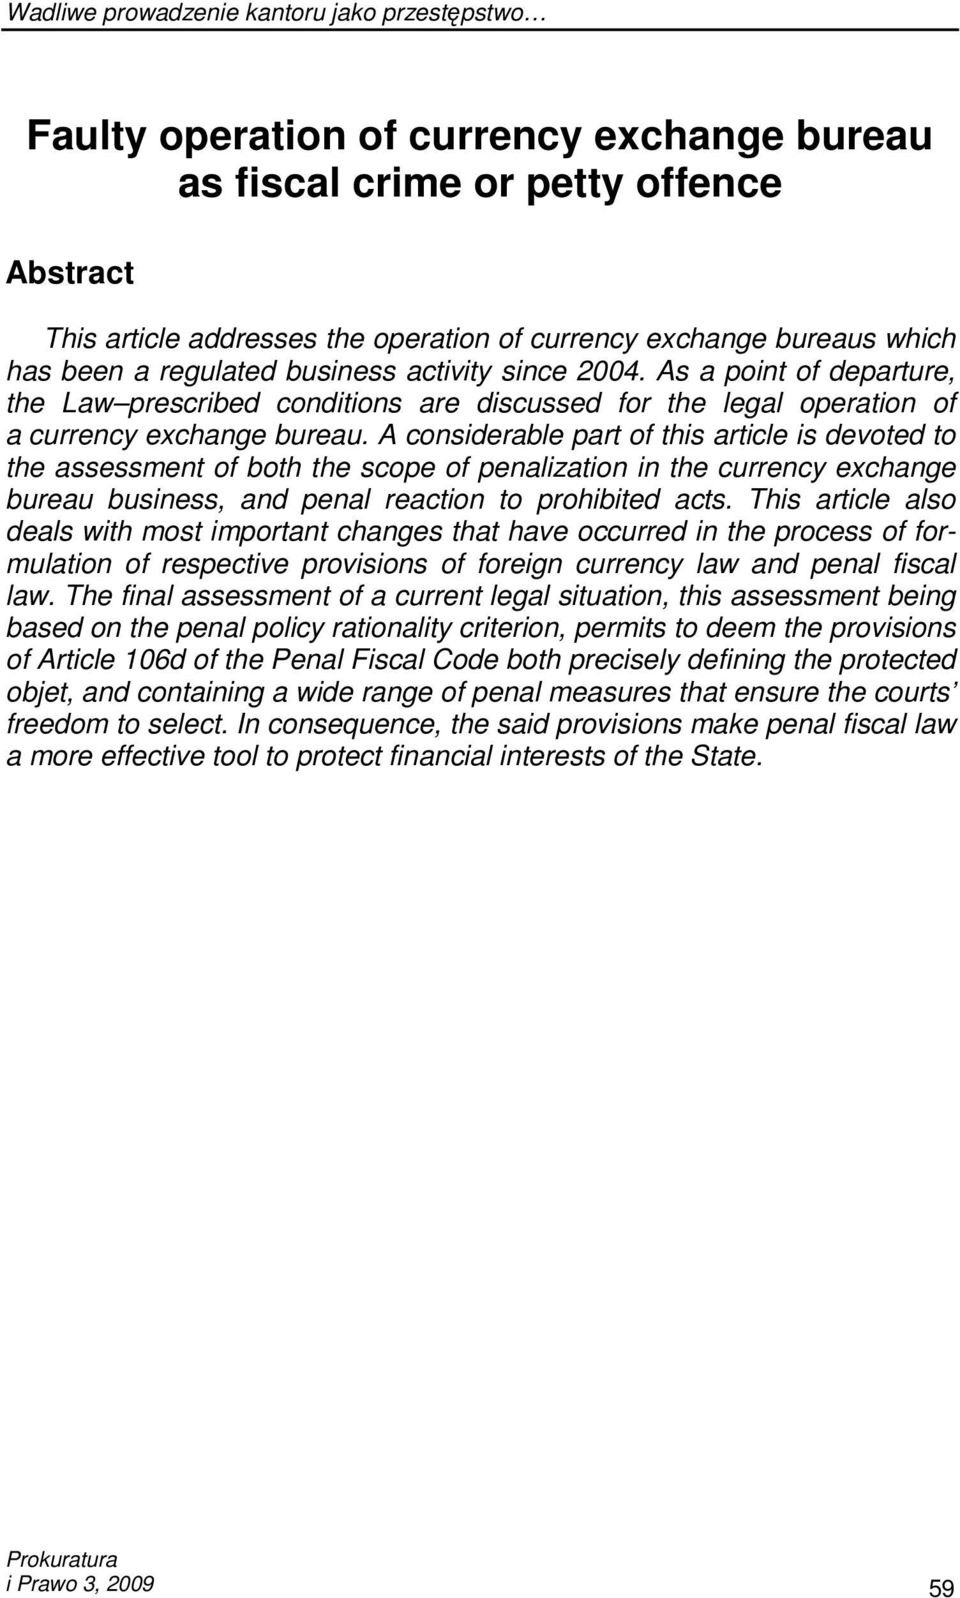 A considerable part of this article is devoted to the assessment of both the scope of penalization in the currency exchange bureau business, and penal reaction to prohibited acts.